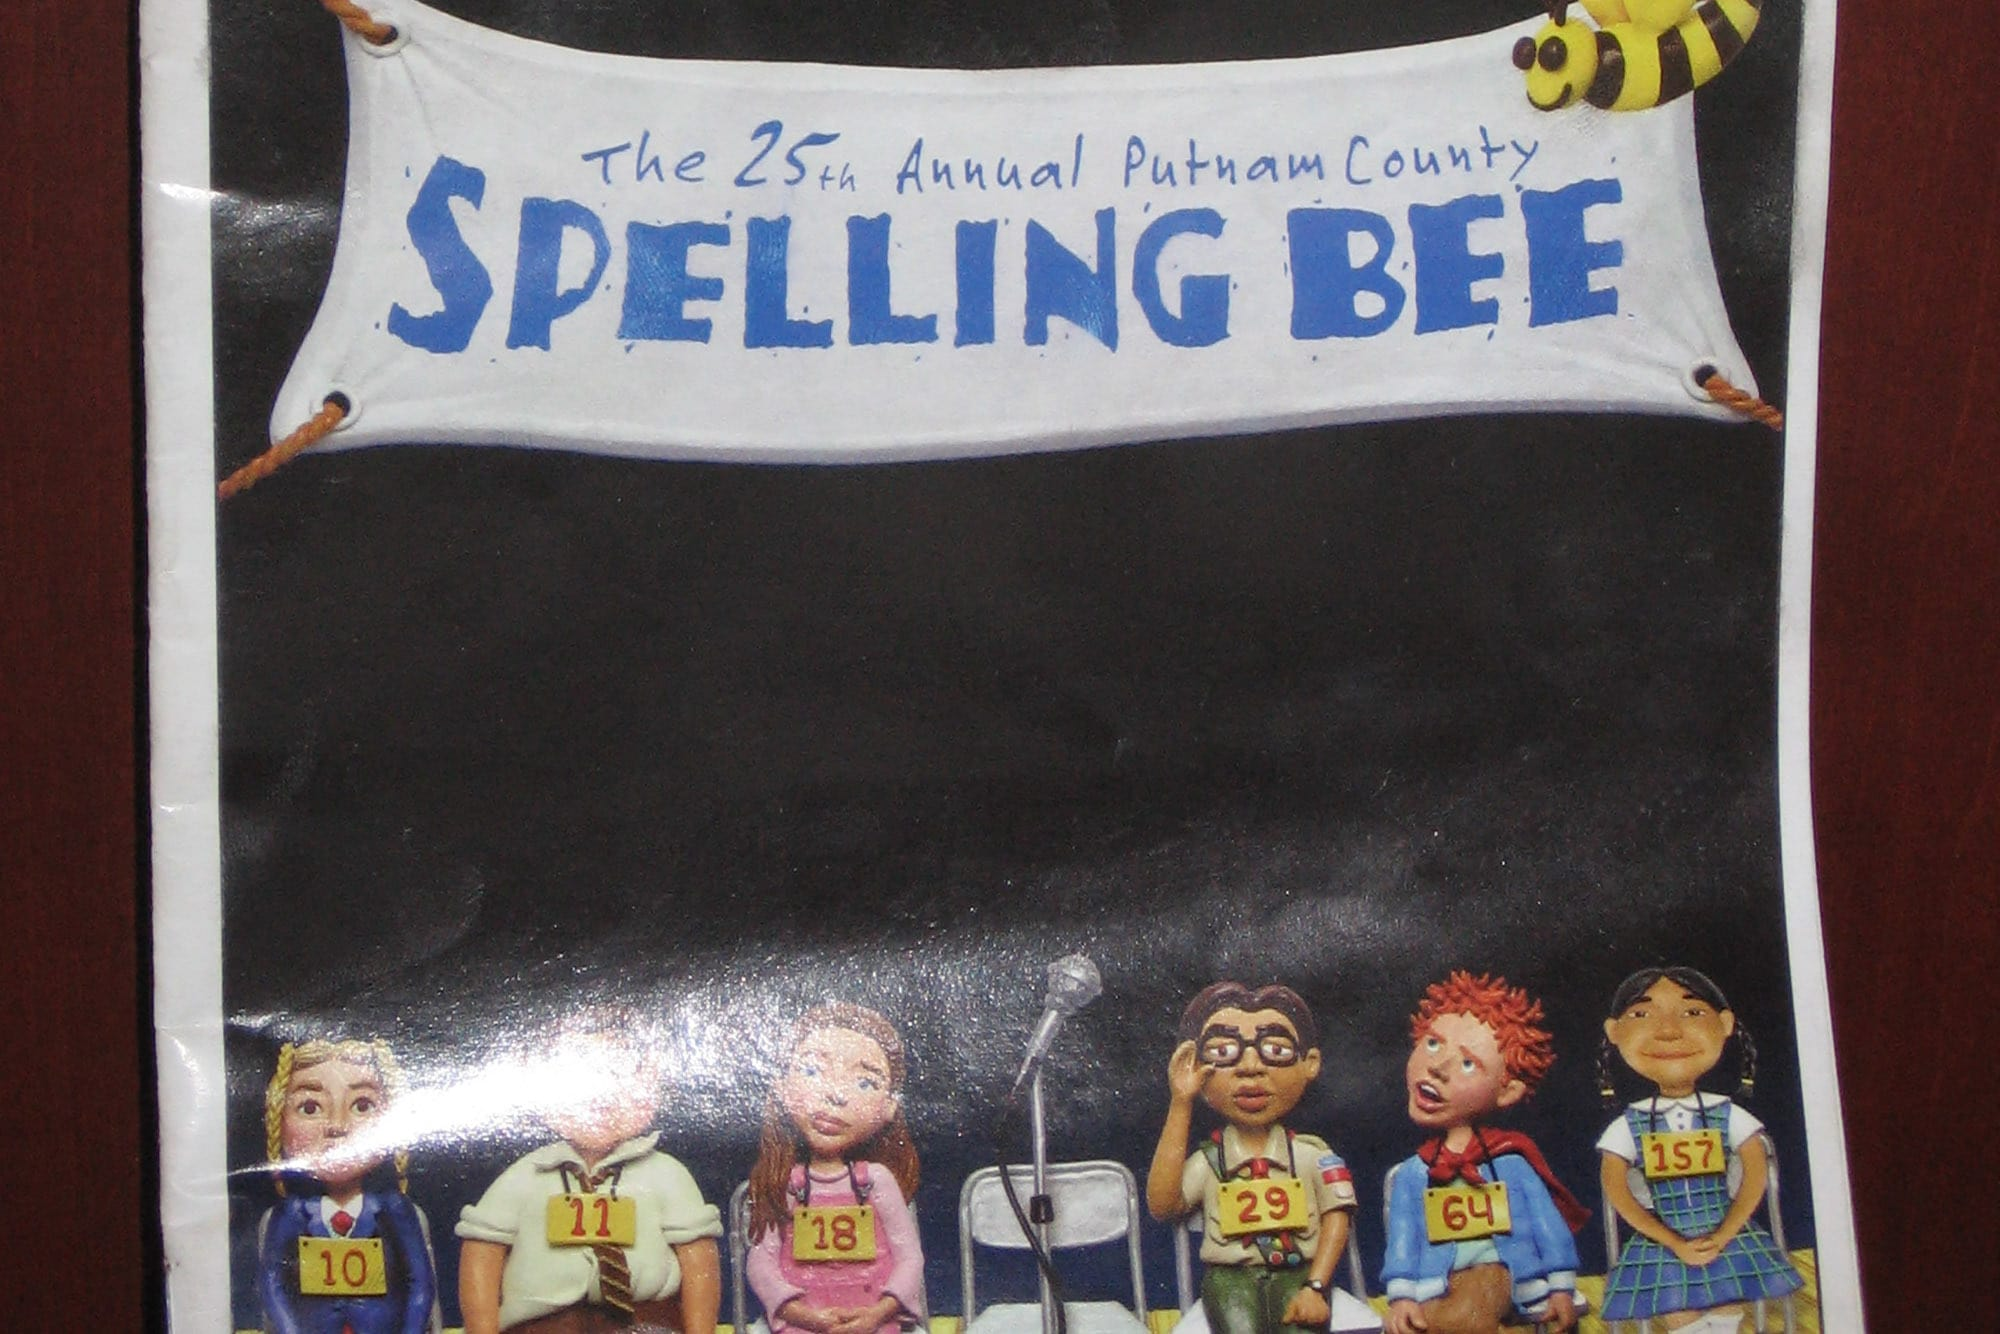 The 25th Annual Putnam County Spelling Bee in Chicago